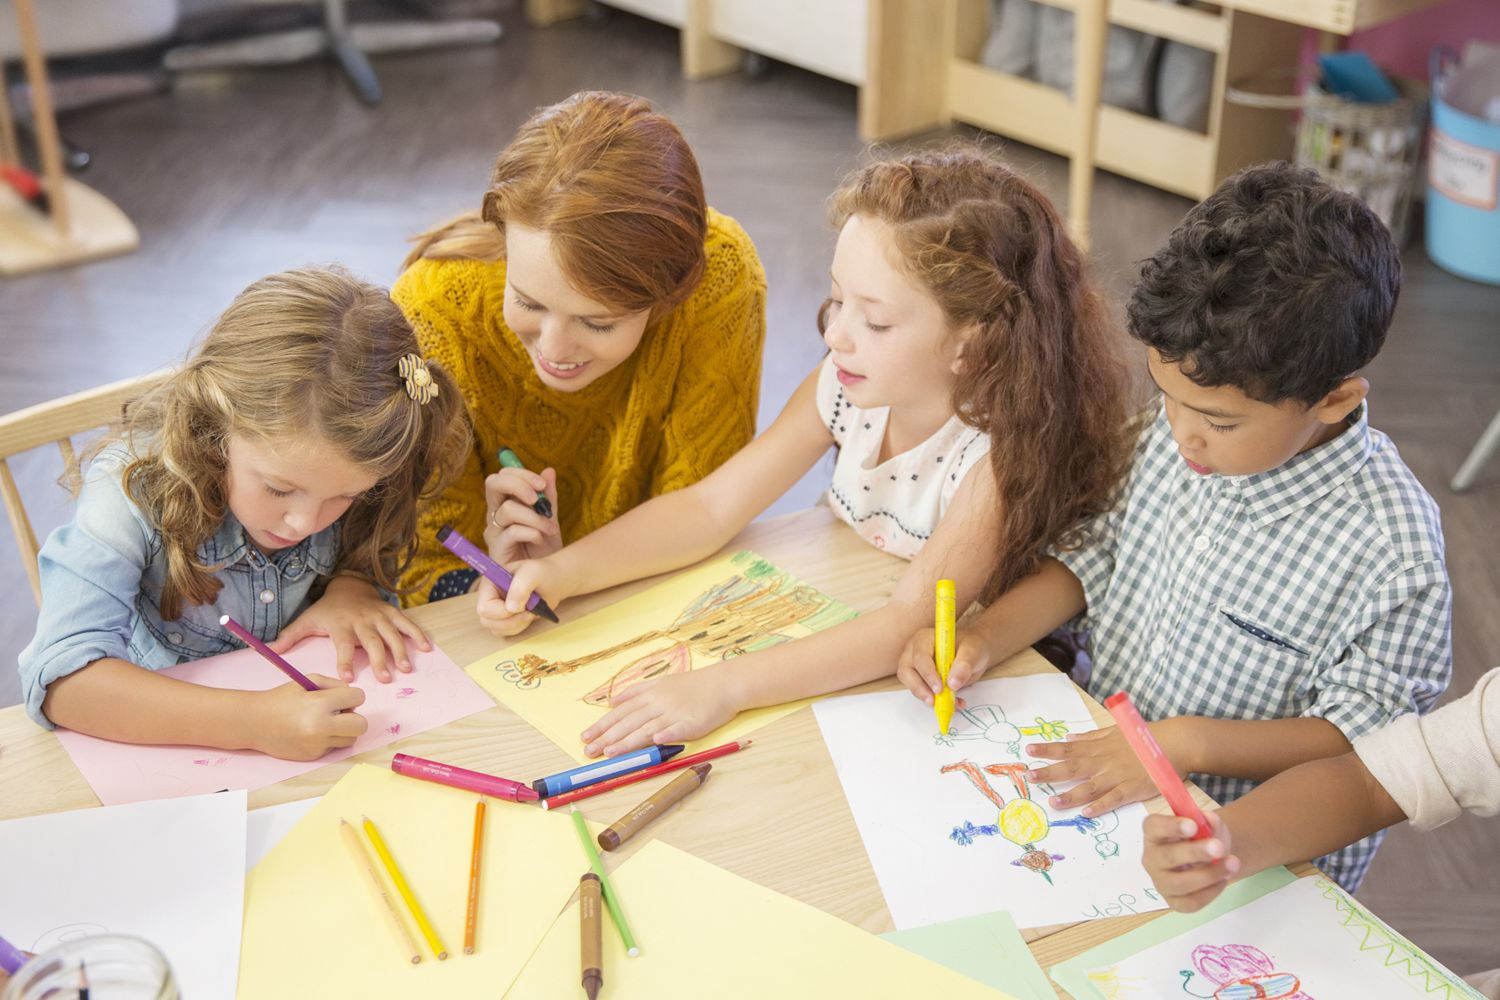 essay on children with learning disabilities Children with learning disabilities are smart or smarter than their peers, but may have difficulty with things like reading, writing, reasoning, and organizing information by themselves.